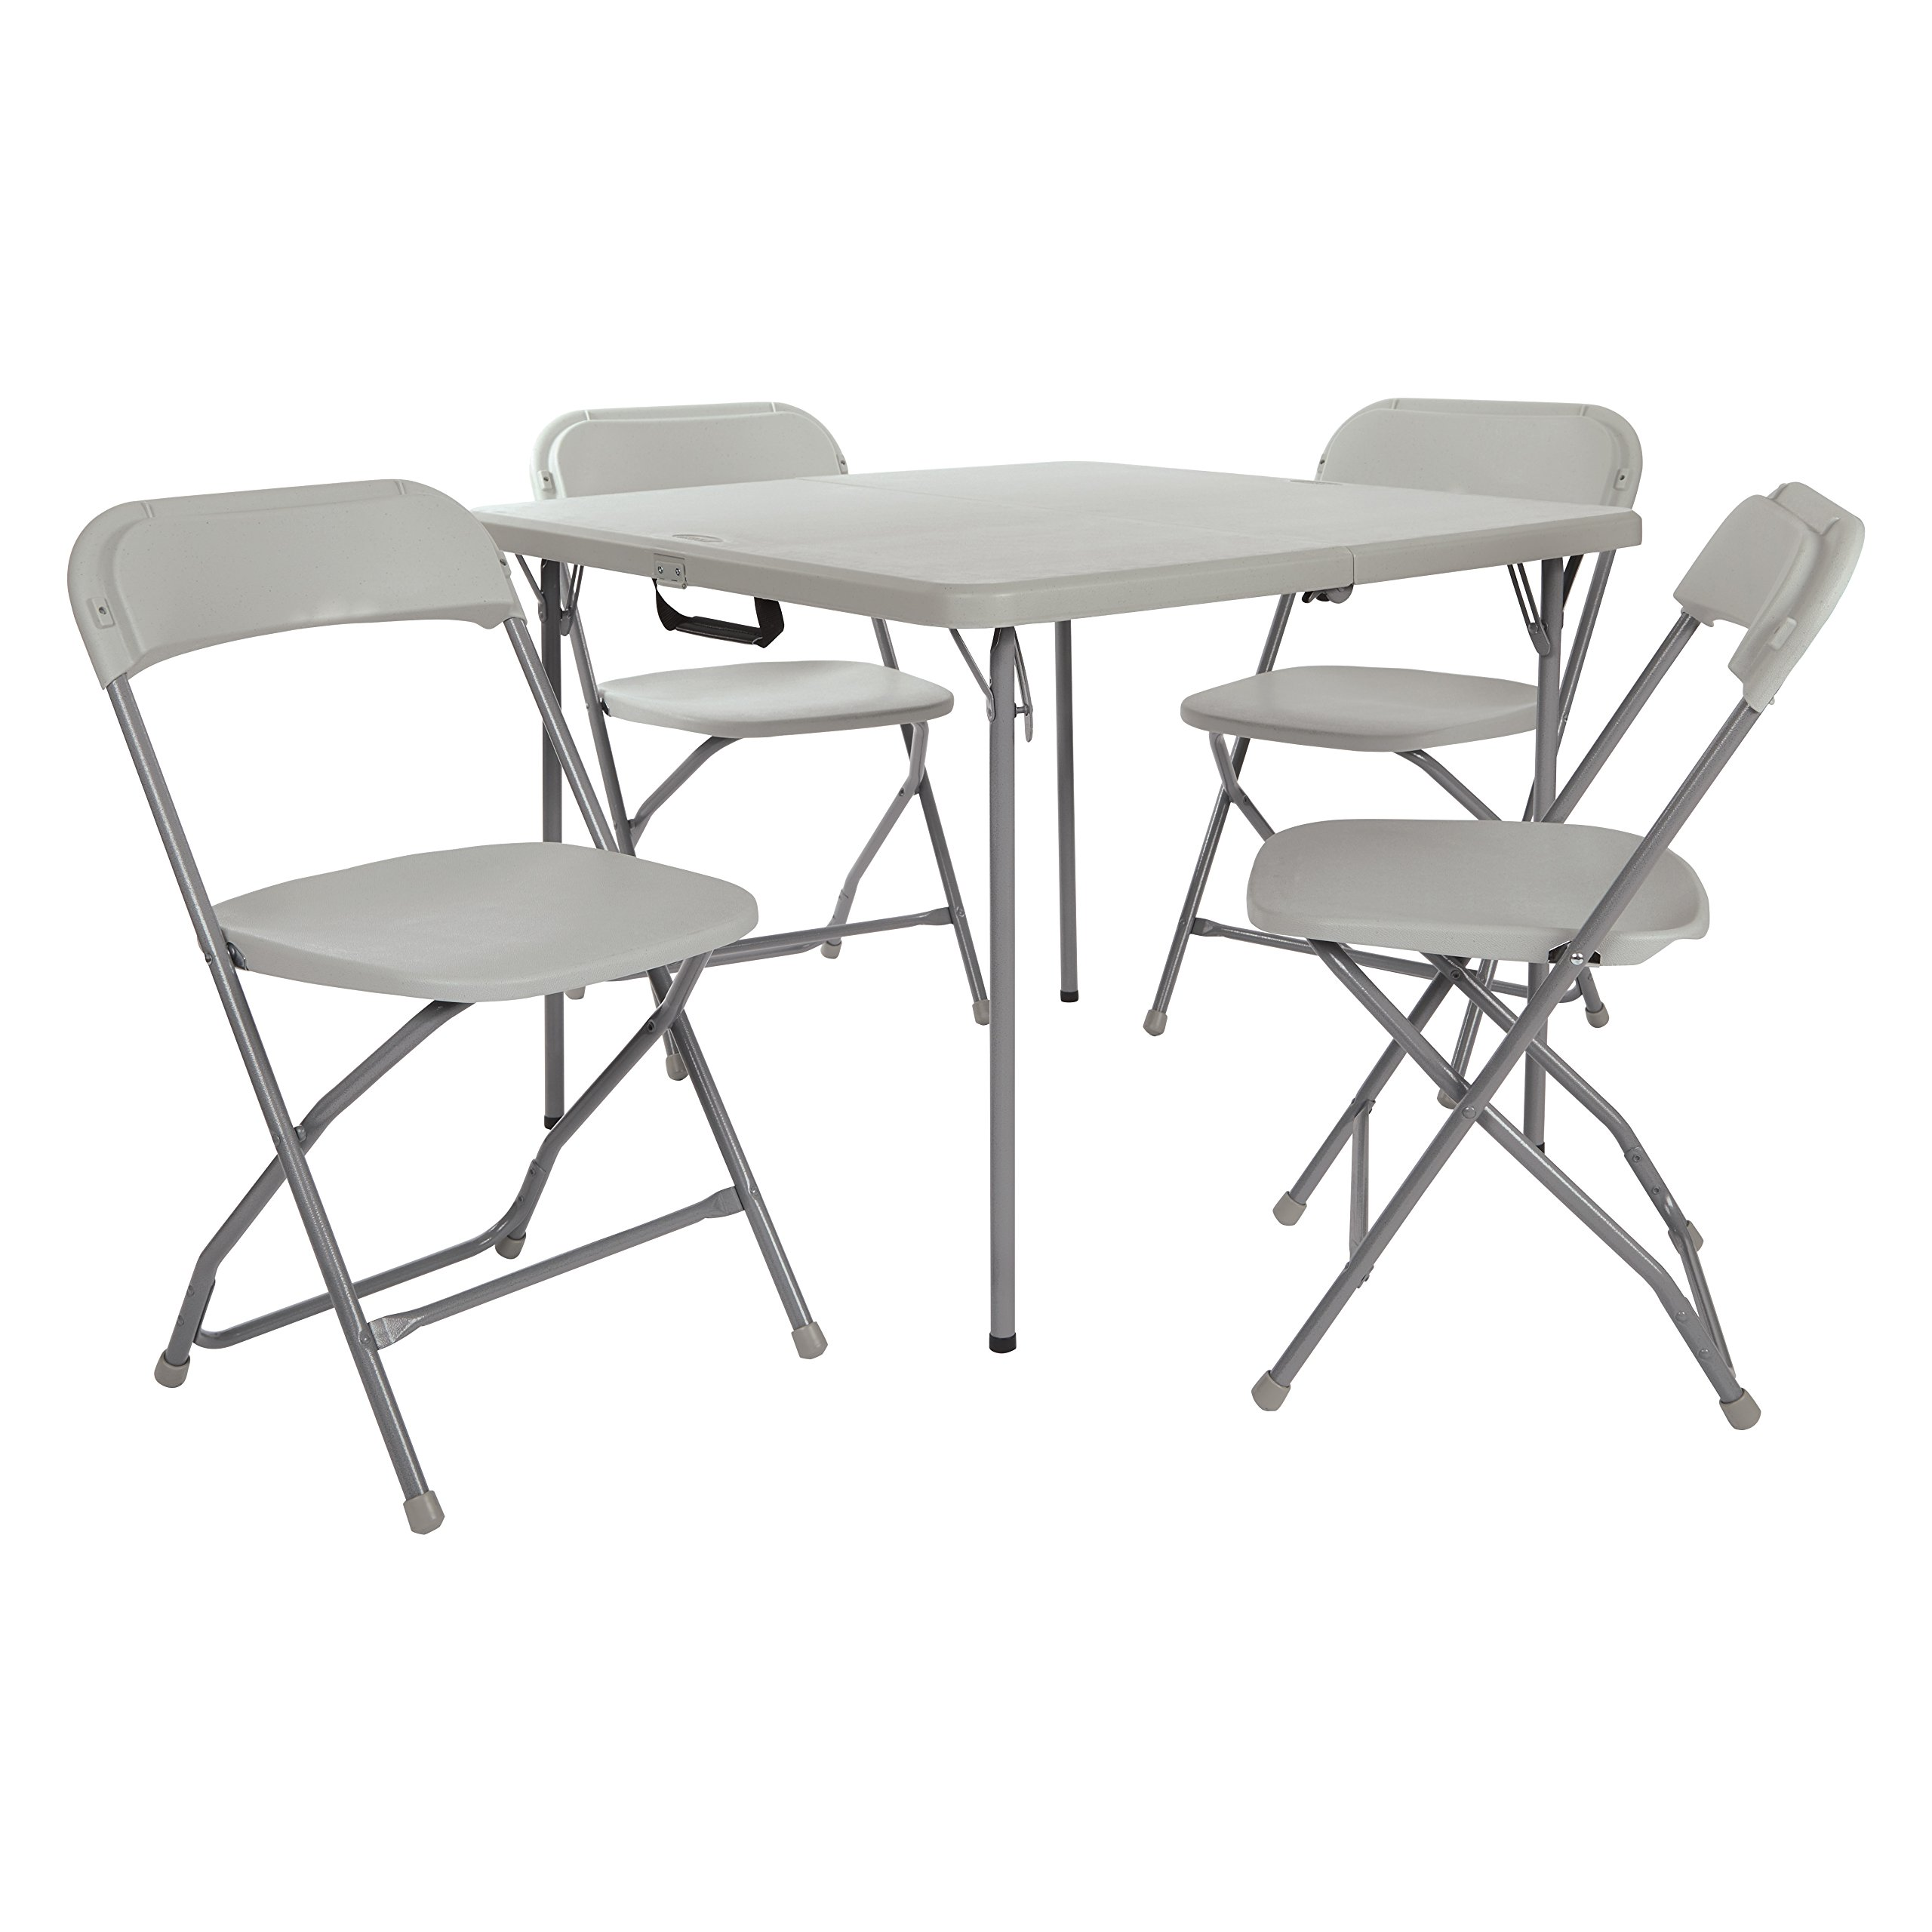 Office Star PCT-05 Table and Chair Set, Light Grey by Office Star